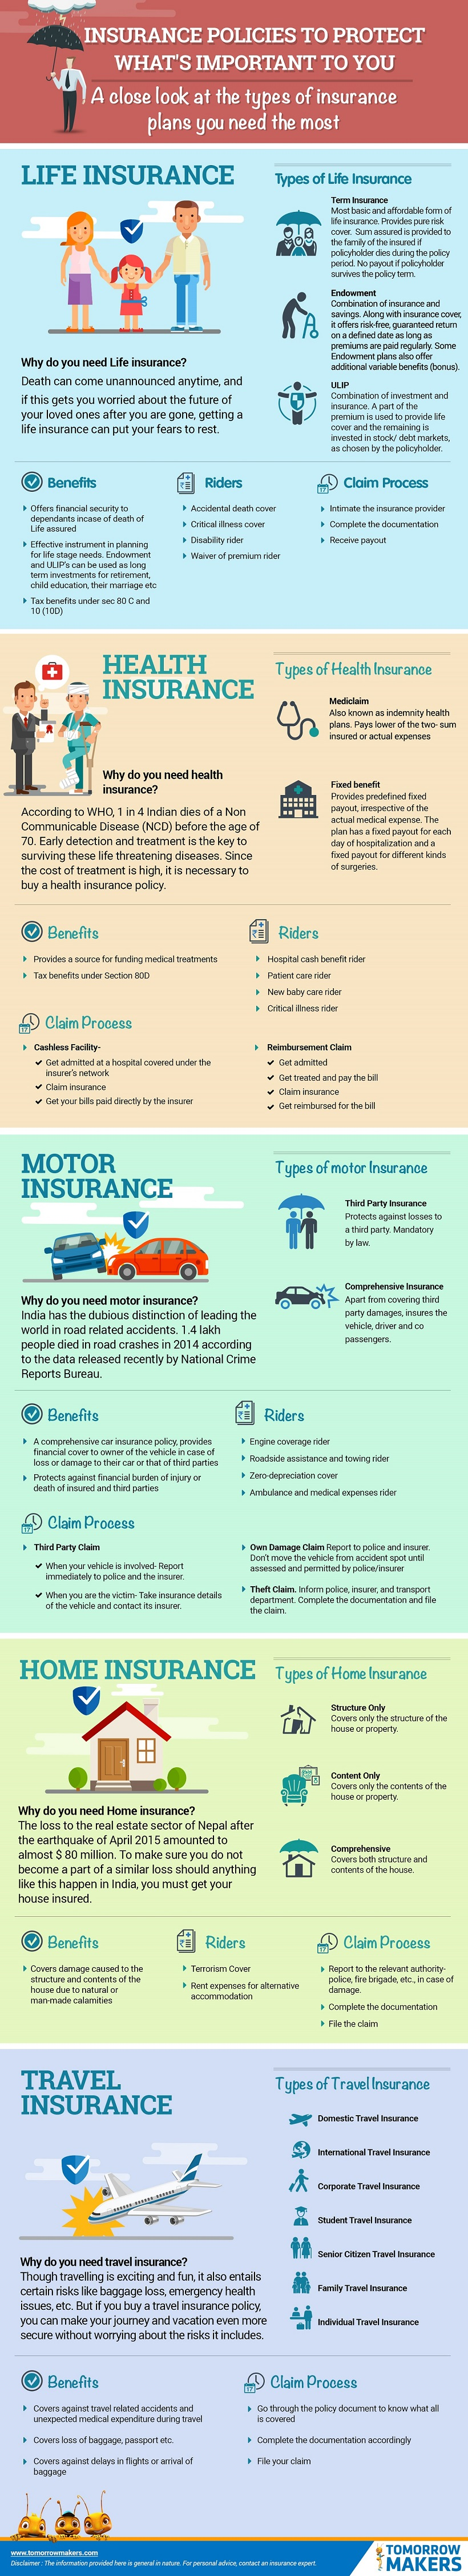 insurance-policies-to-protect-whats-important-to-you-infographic